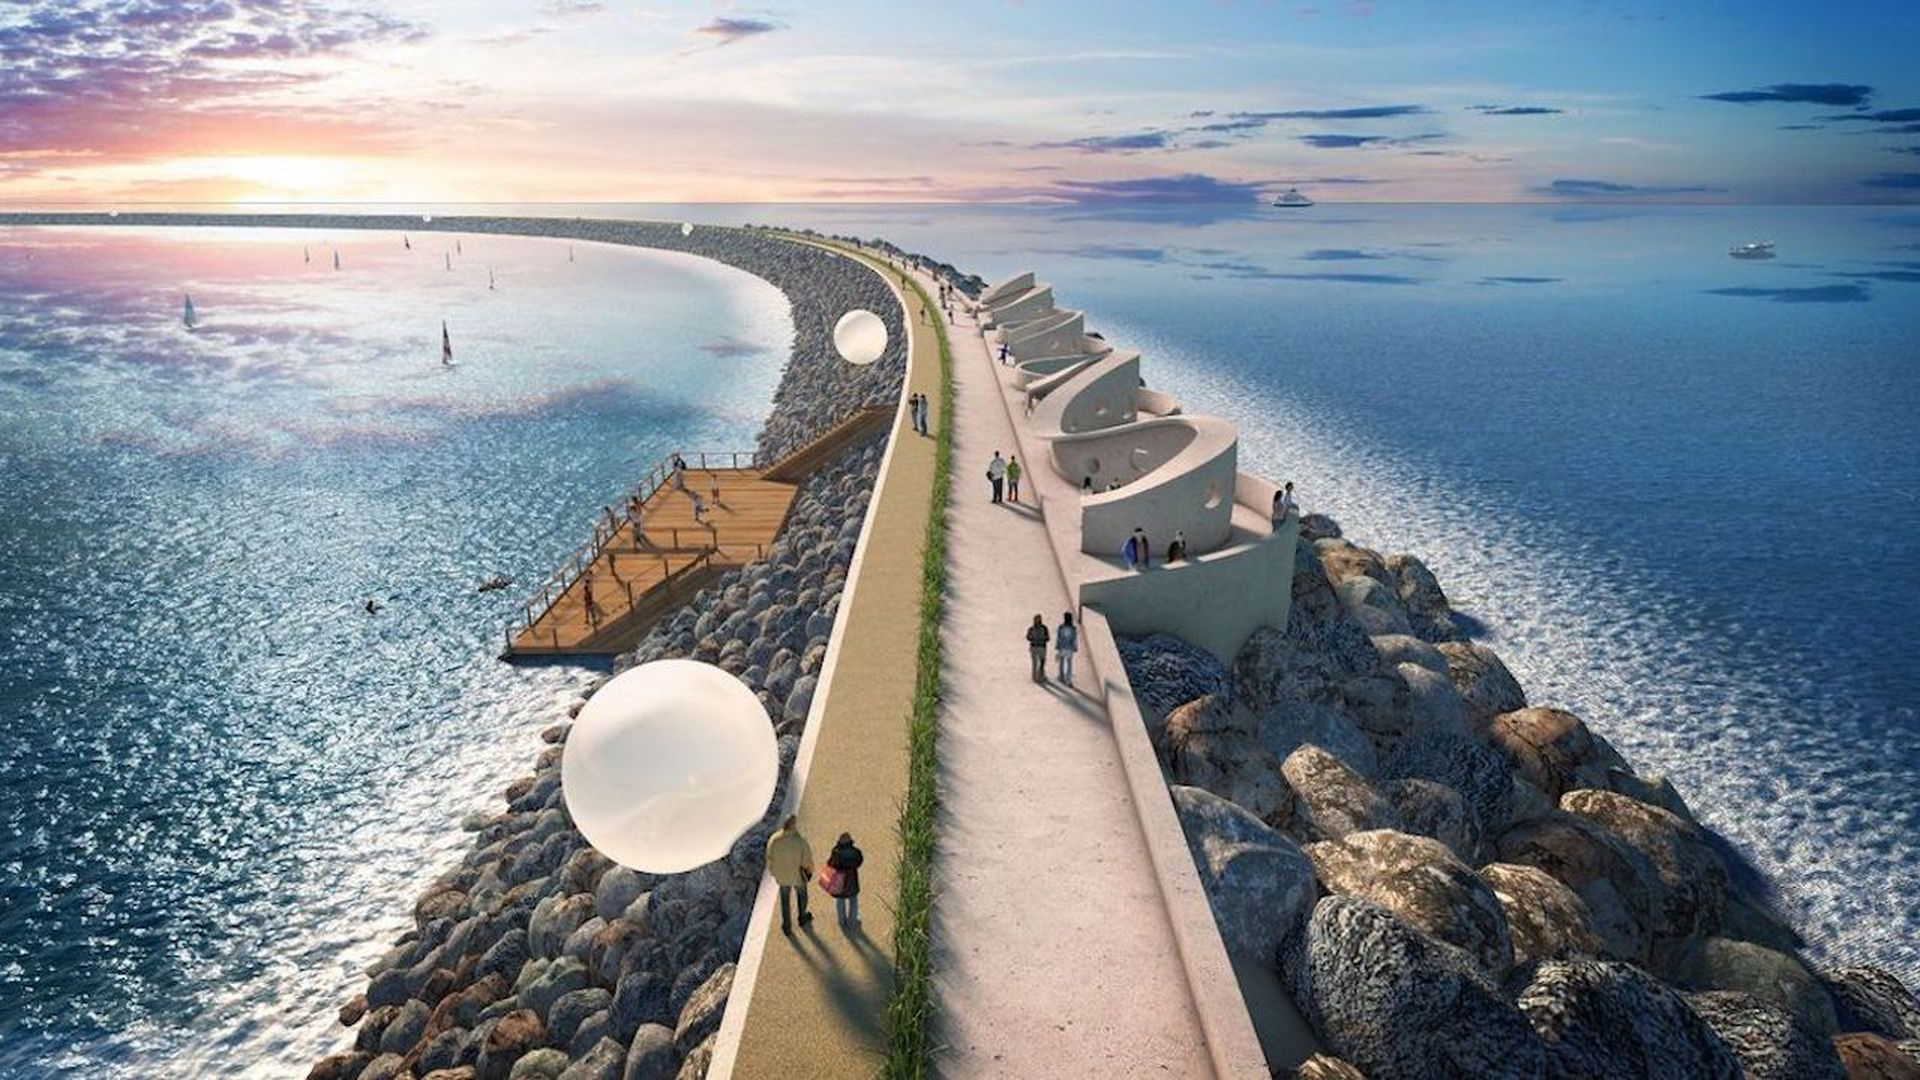 A rendering of the Swansea Tidal Lagoon project. Image: Tidal Lagoon Power via PA Wire